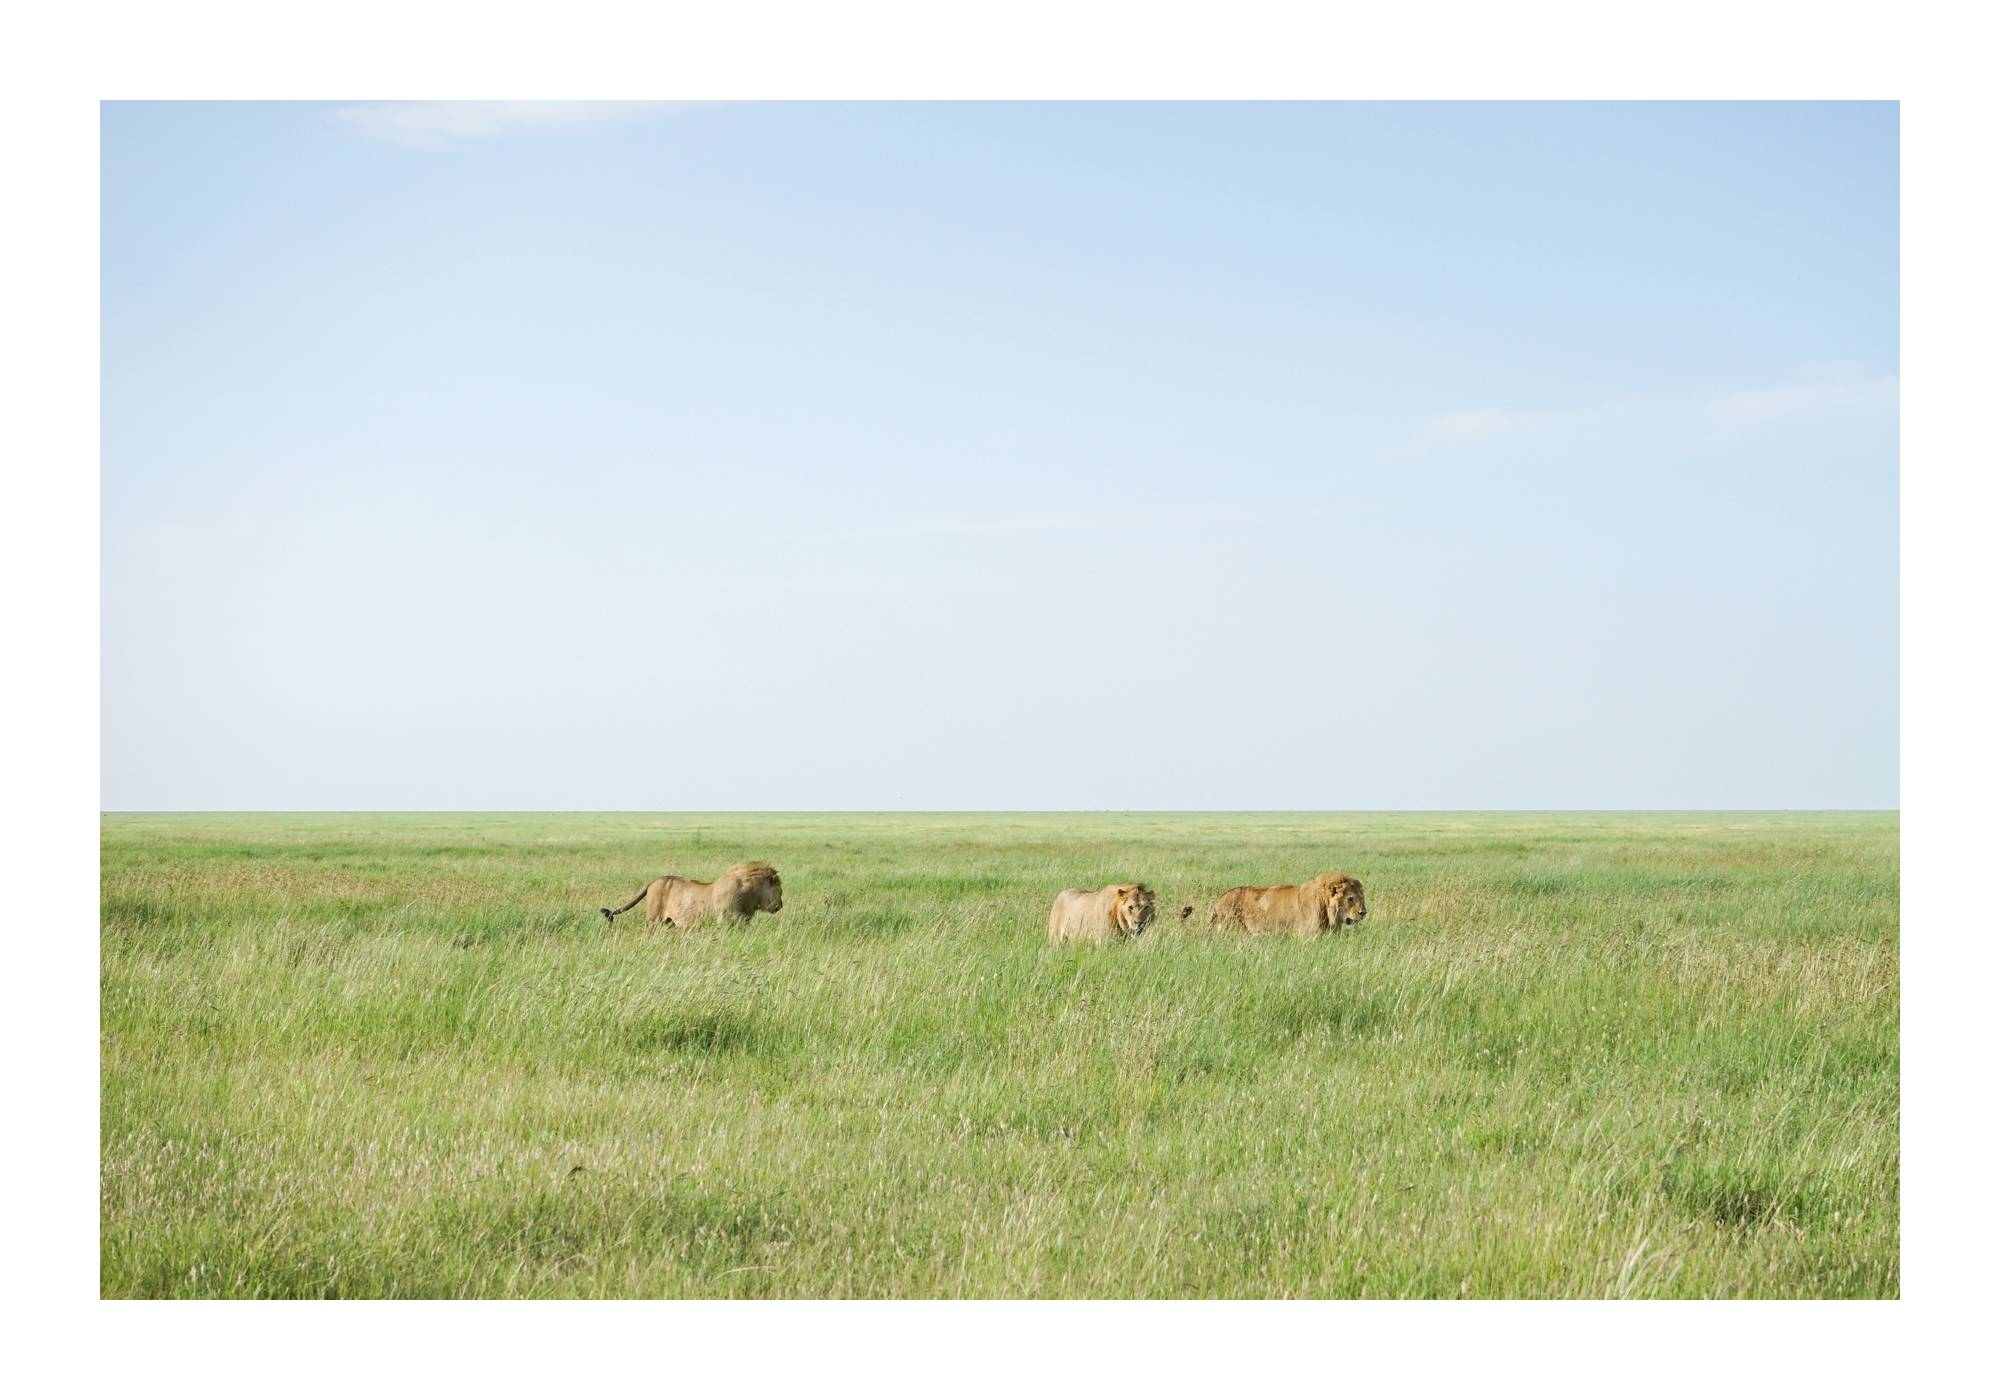 3 male lions in Serengeti, Tanzania